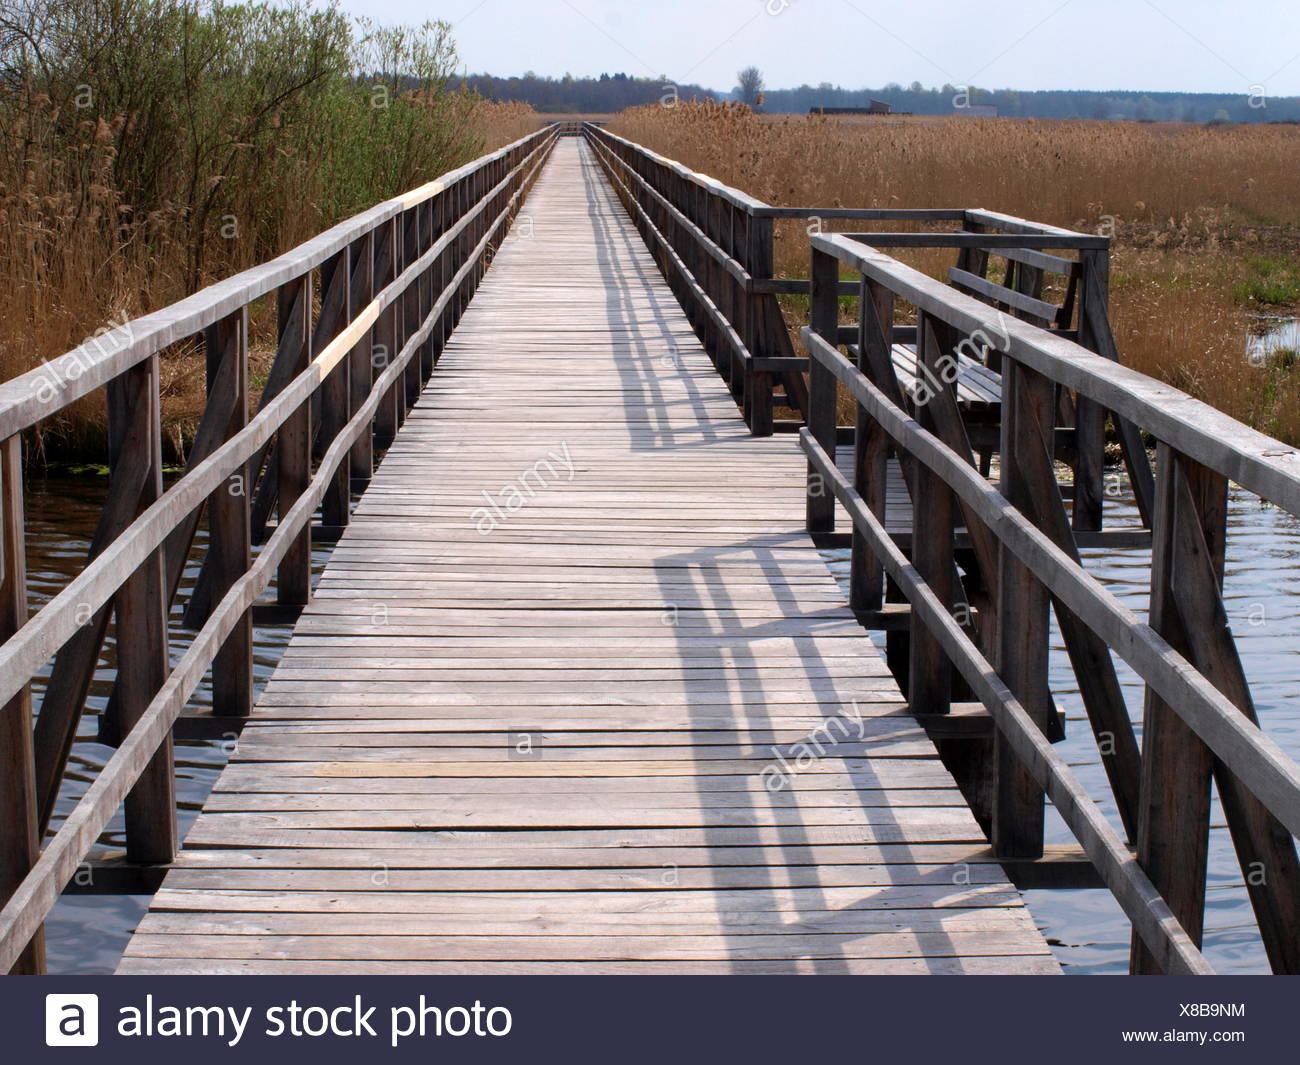 Boardwalk at the Federsee in Germany Stock Photo